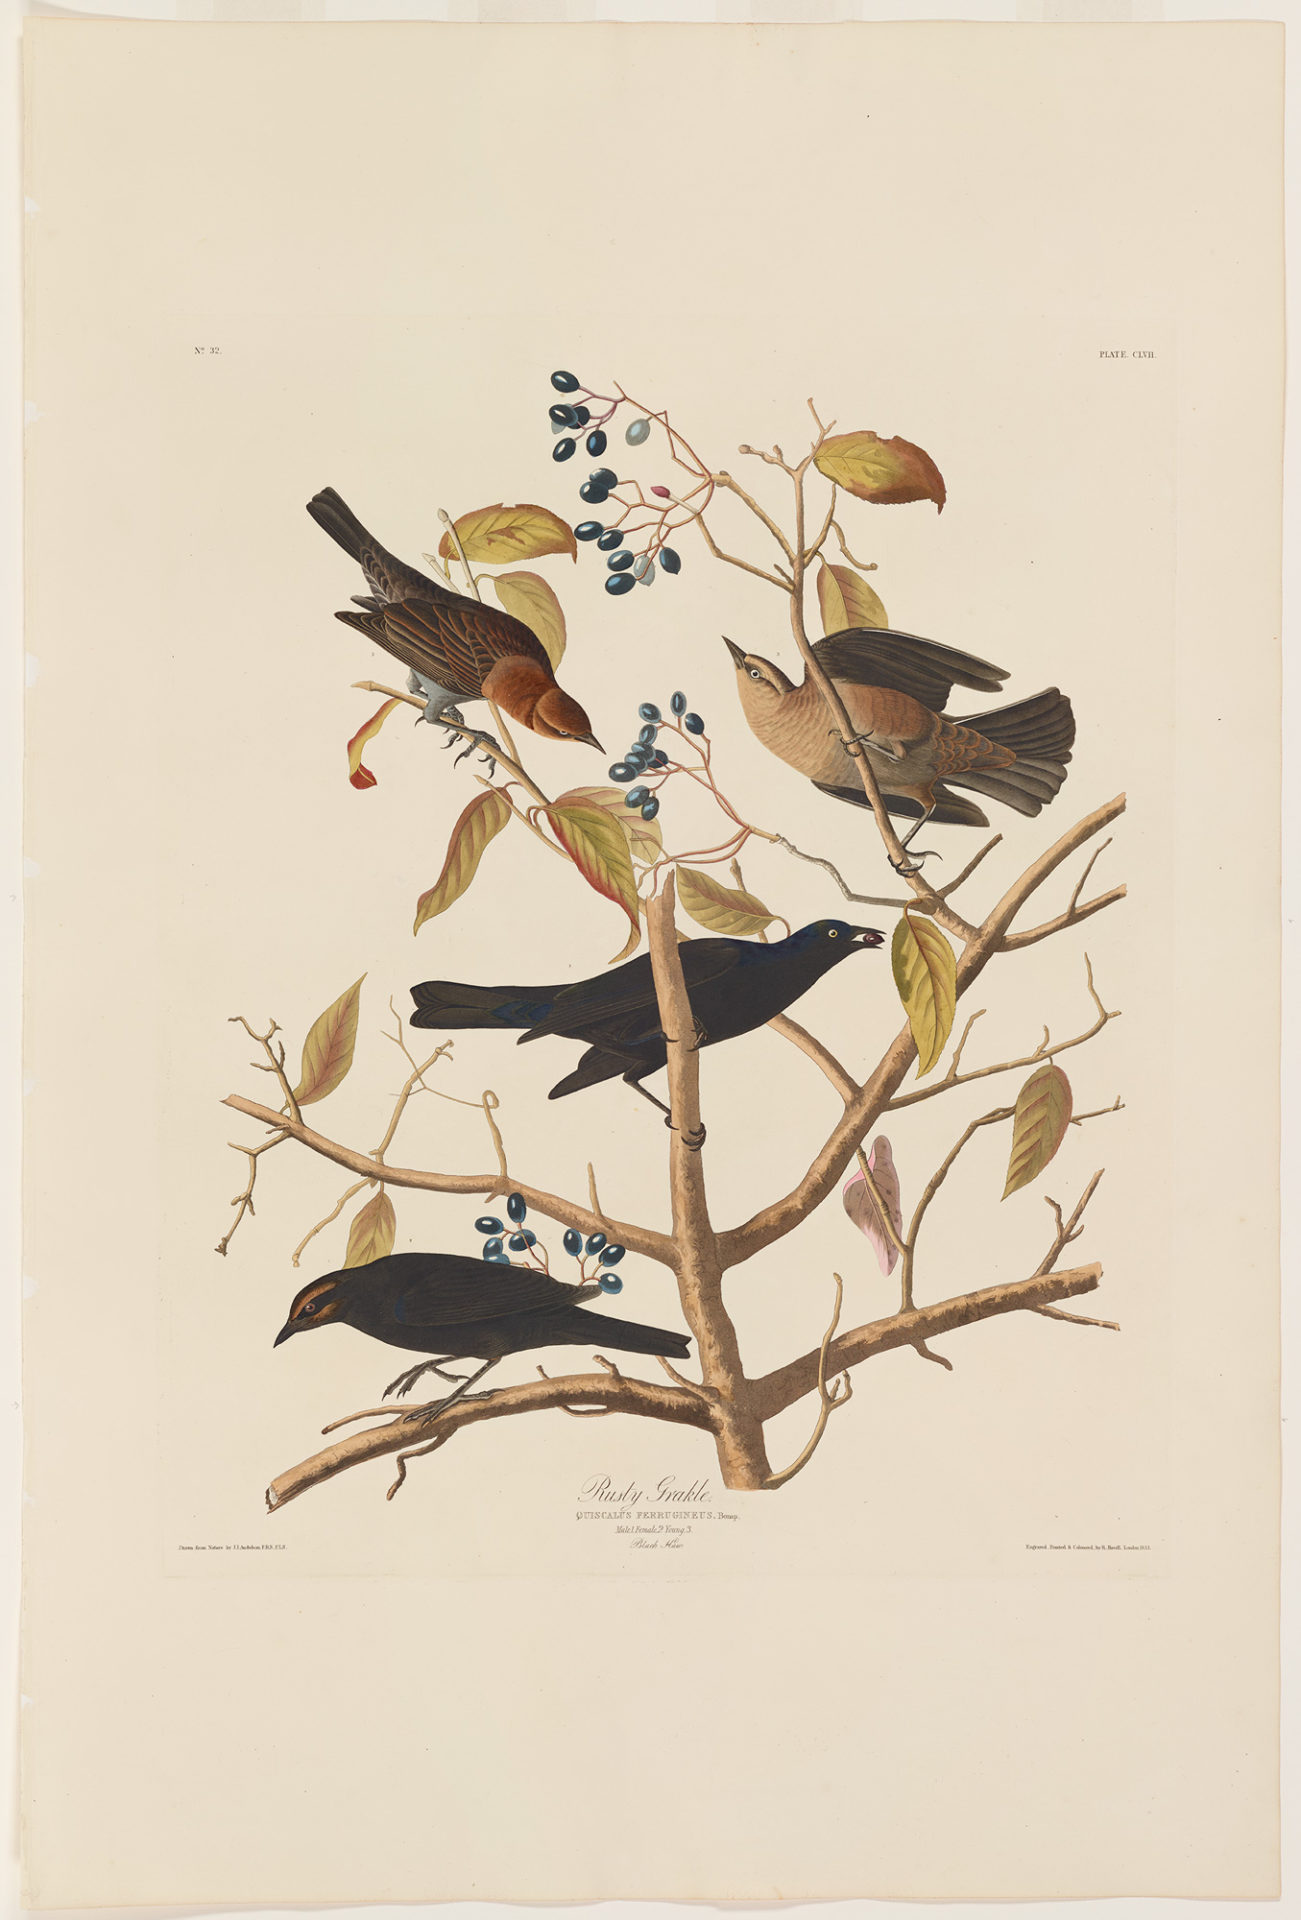 Rusty Blackbird, Plate 157 Hand-colored engraving from The Birds of America, 1826-1838